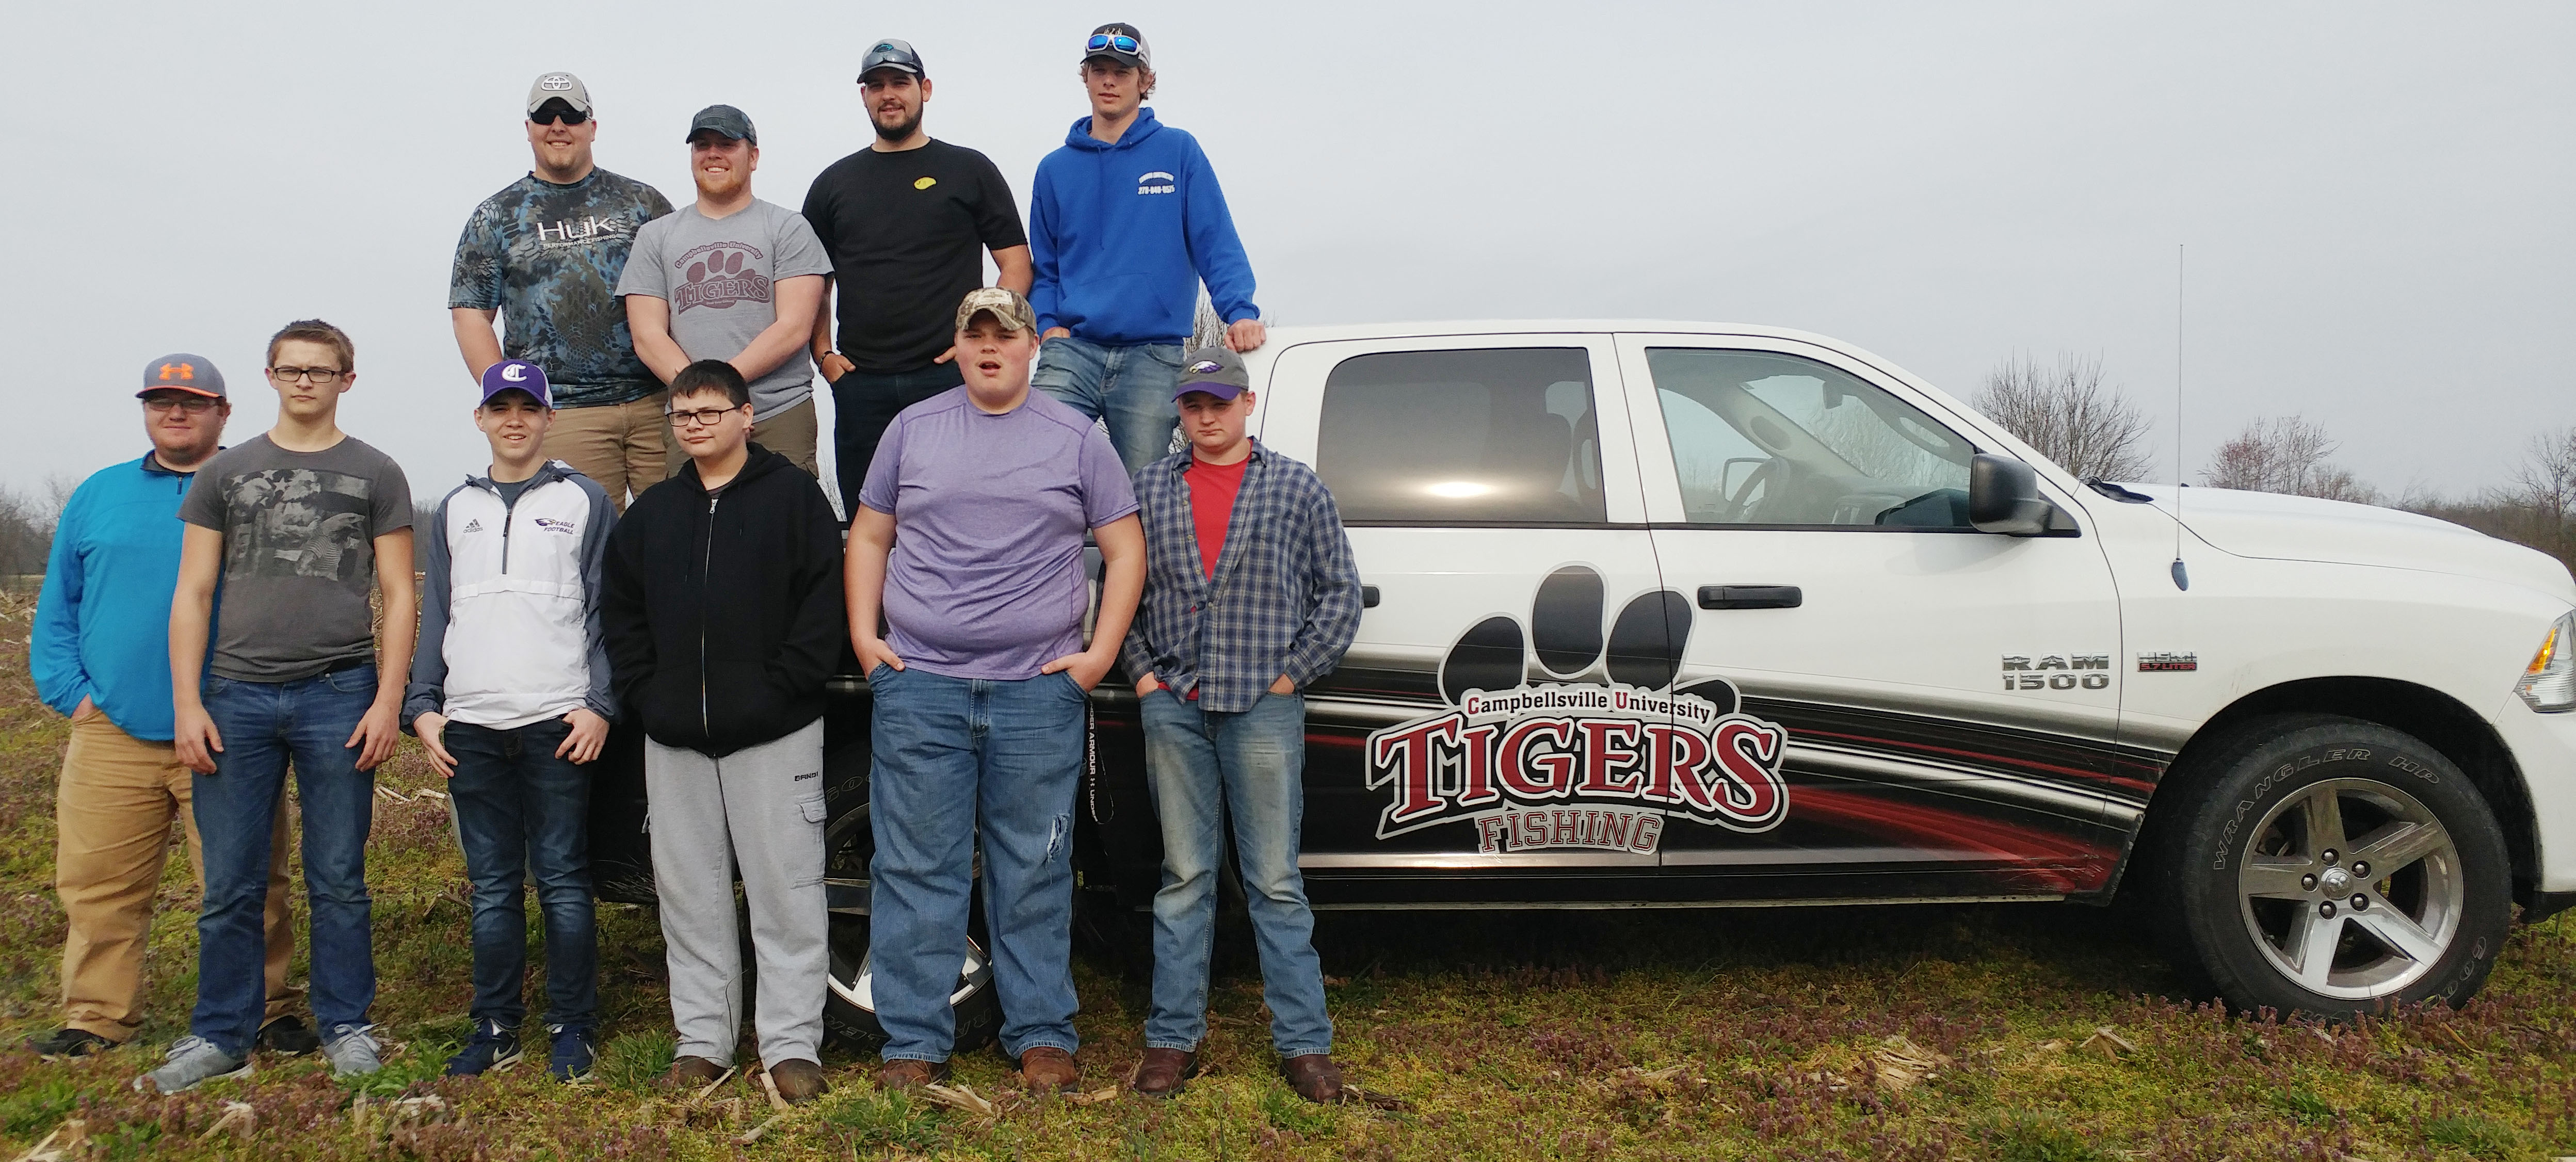 CHS fishing team members recently met with the Campbellsville University fishing team for some training. From left, front, are CU senior Travis Hunt, CHS freshmen Dalton Brown, Cole Kidwell and Gabriel Gutierrez and juniors Tosye Cox and Caleb Hughes. Back, CU junior Dakota Cantrell, CU freshman Trevor Sagracy, CU sophomore Adam Carman and CU freshman Grant Adams, who graduated from CHS in May 2015.